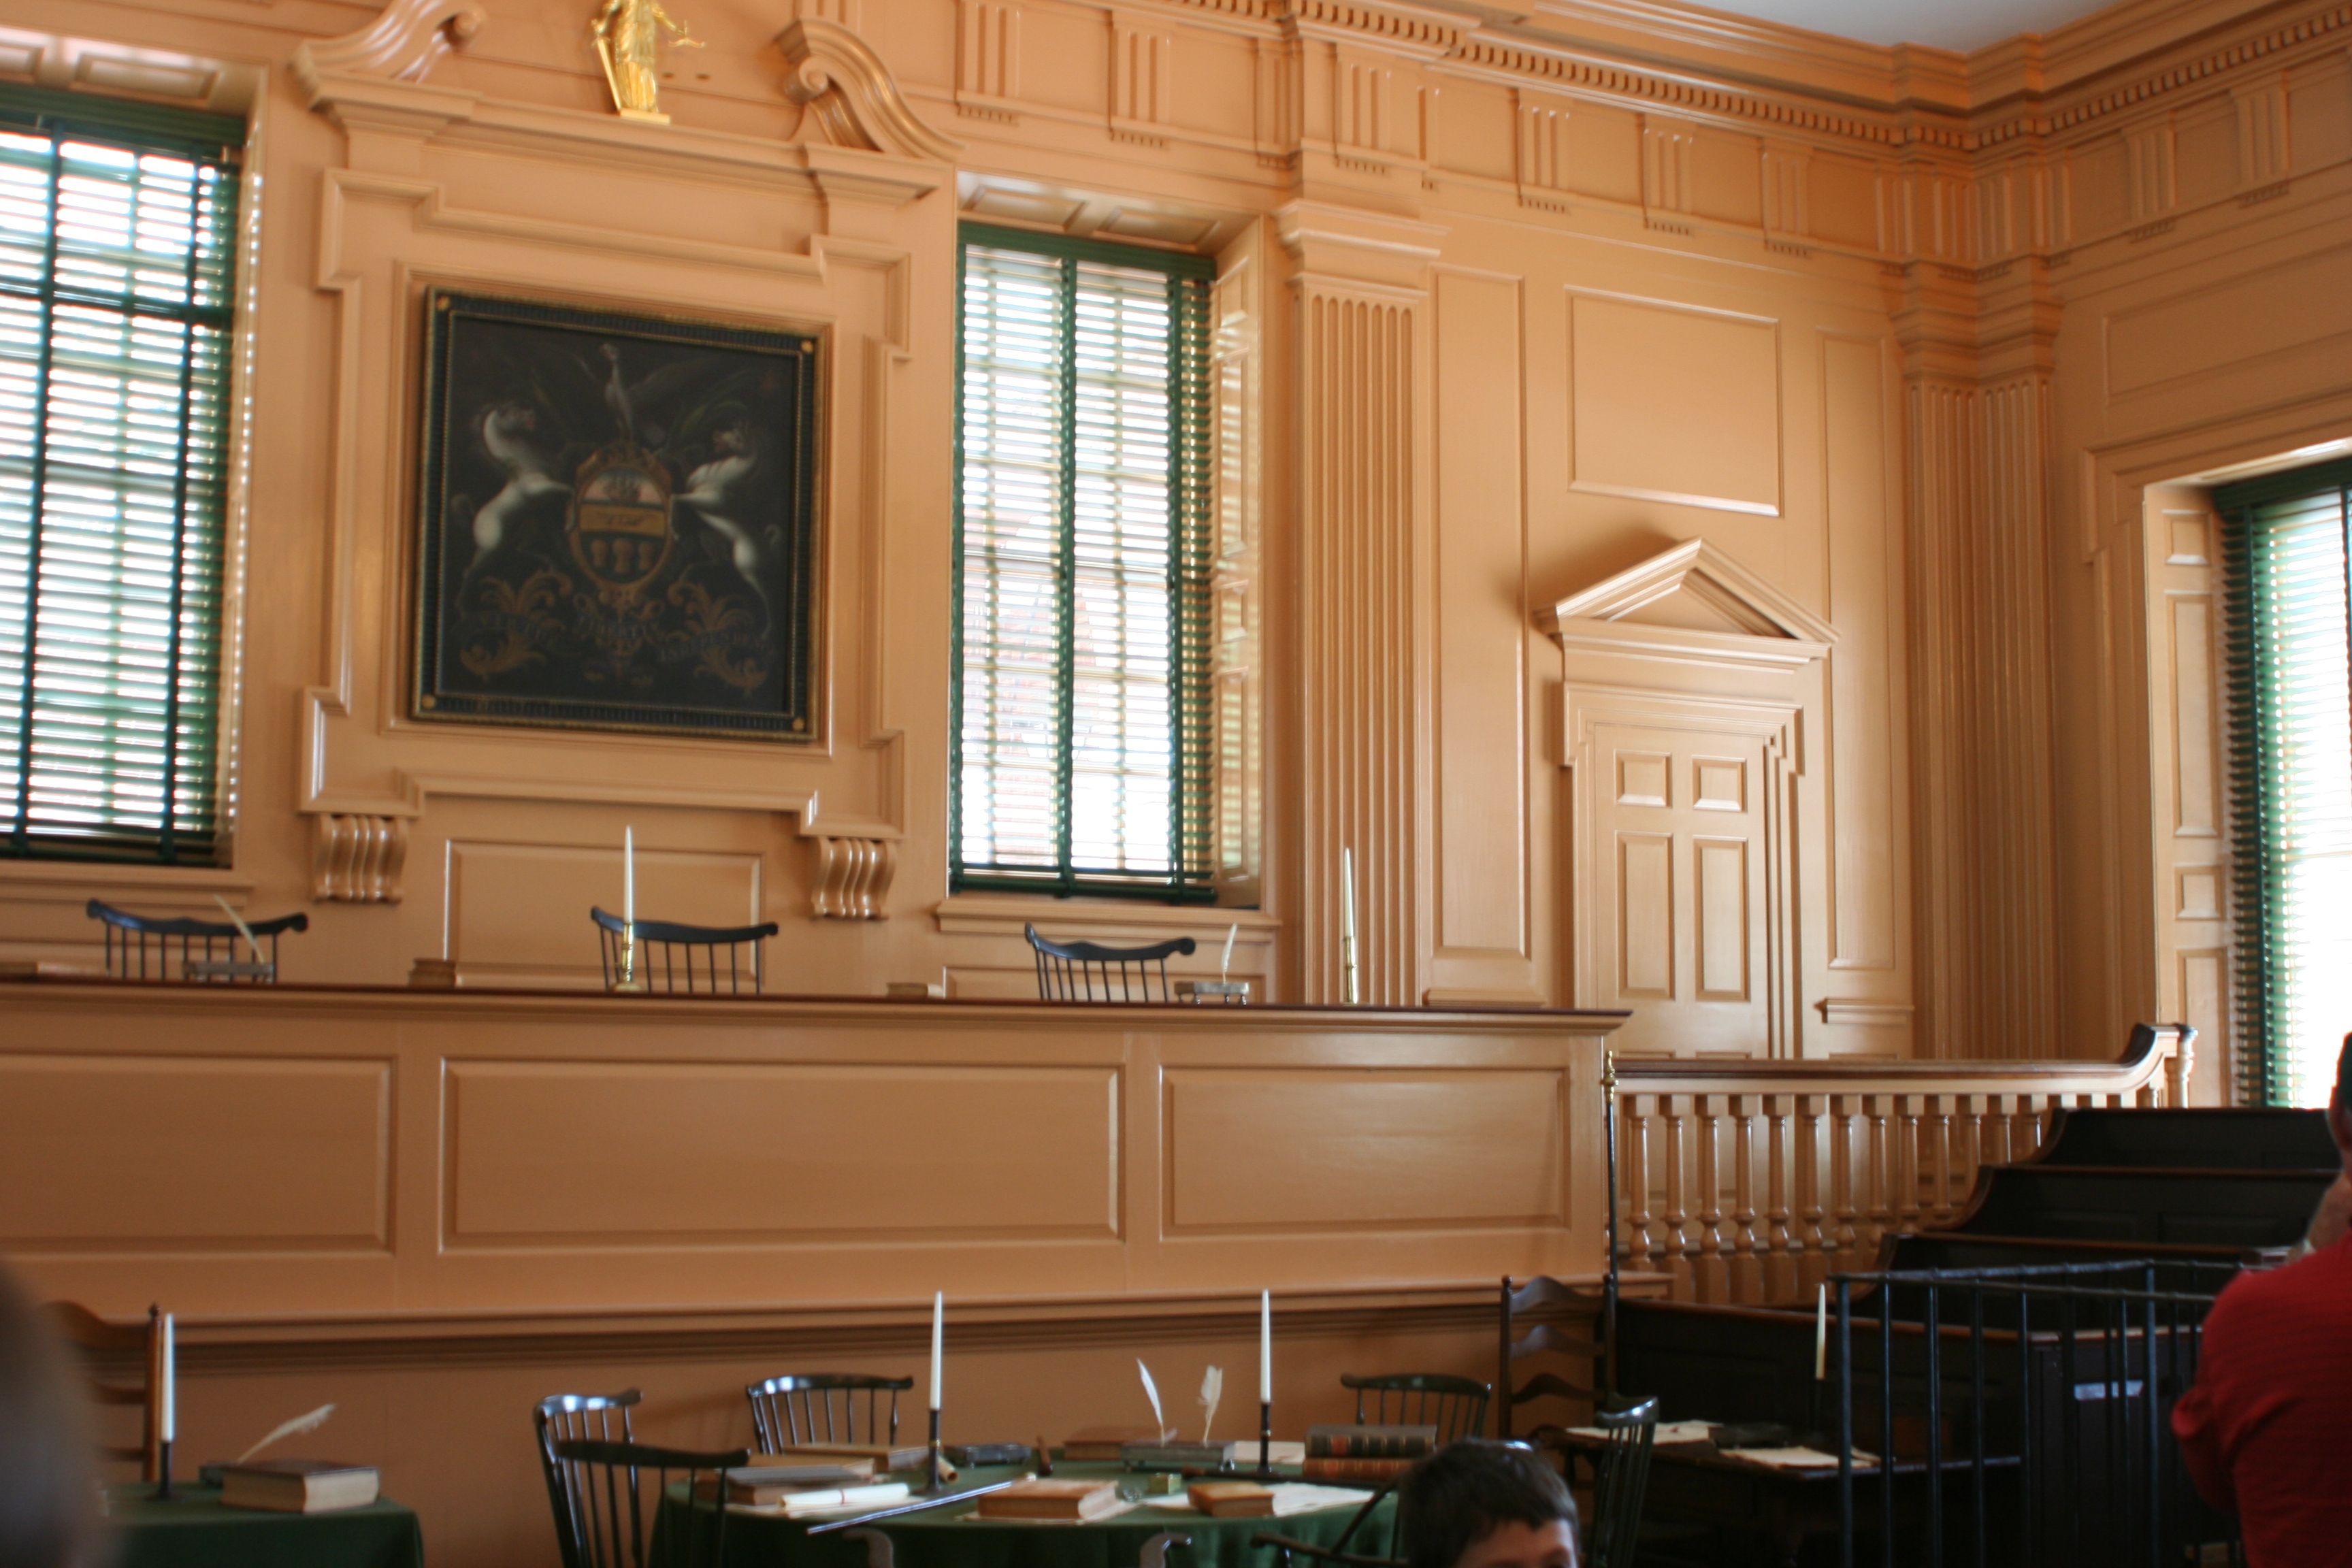 file independence hall public court wikimedia